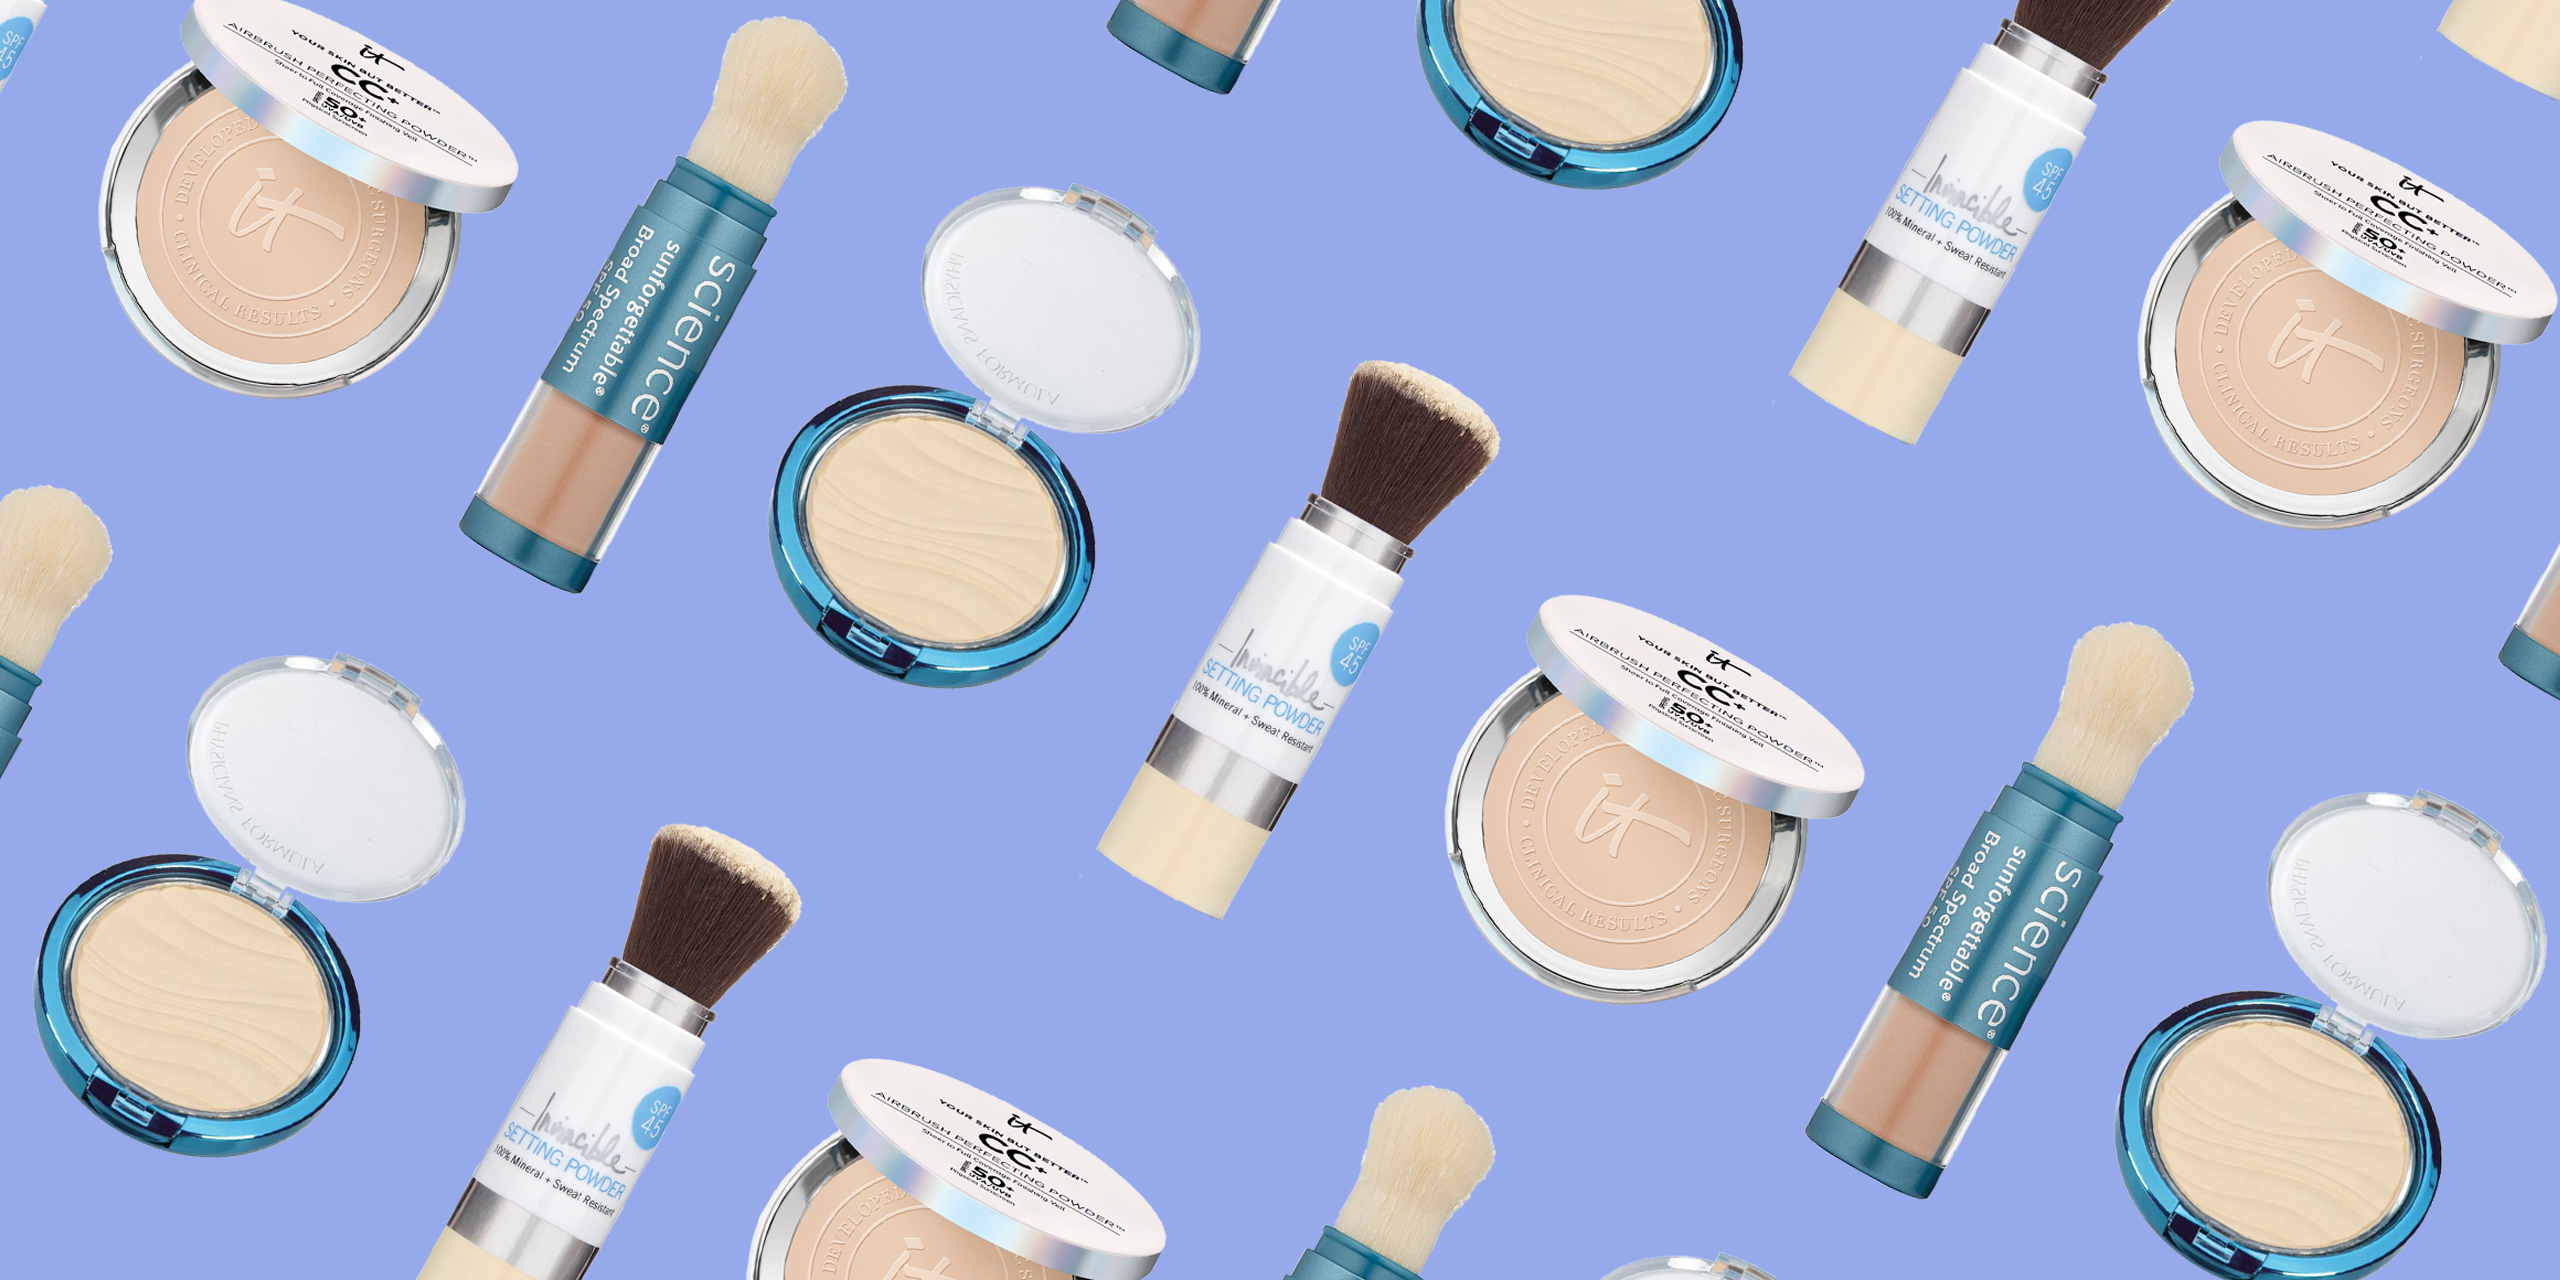 7 Best Powder Sunscreens to Perfect Your Skin While Protecting It